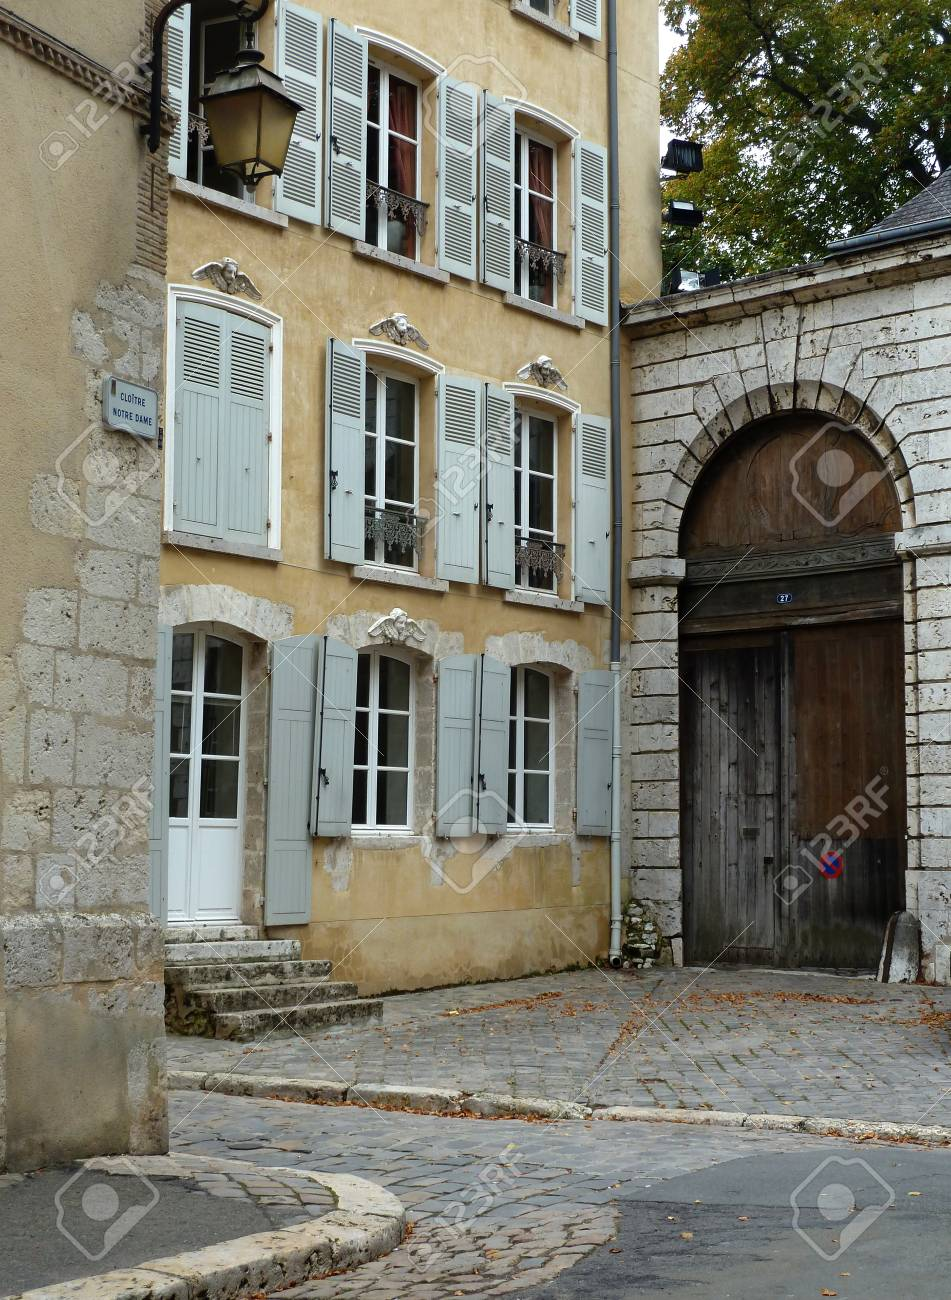 Typical French Home With Shuttered Windows And Cobblestone Streets